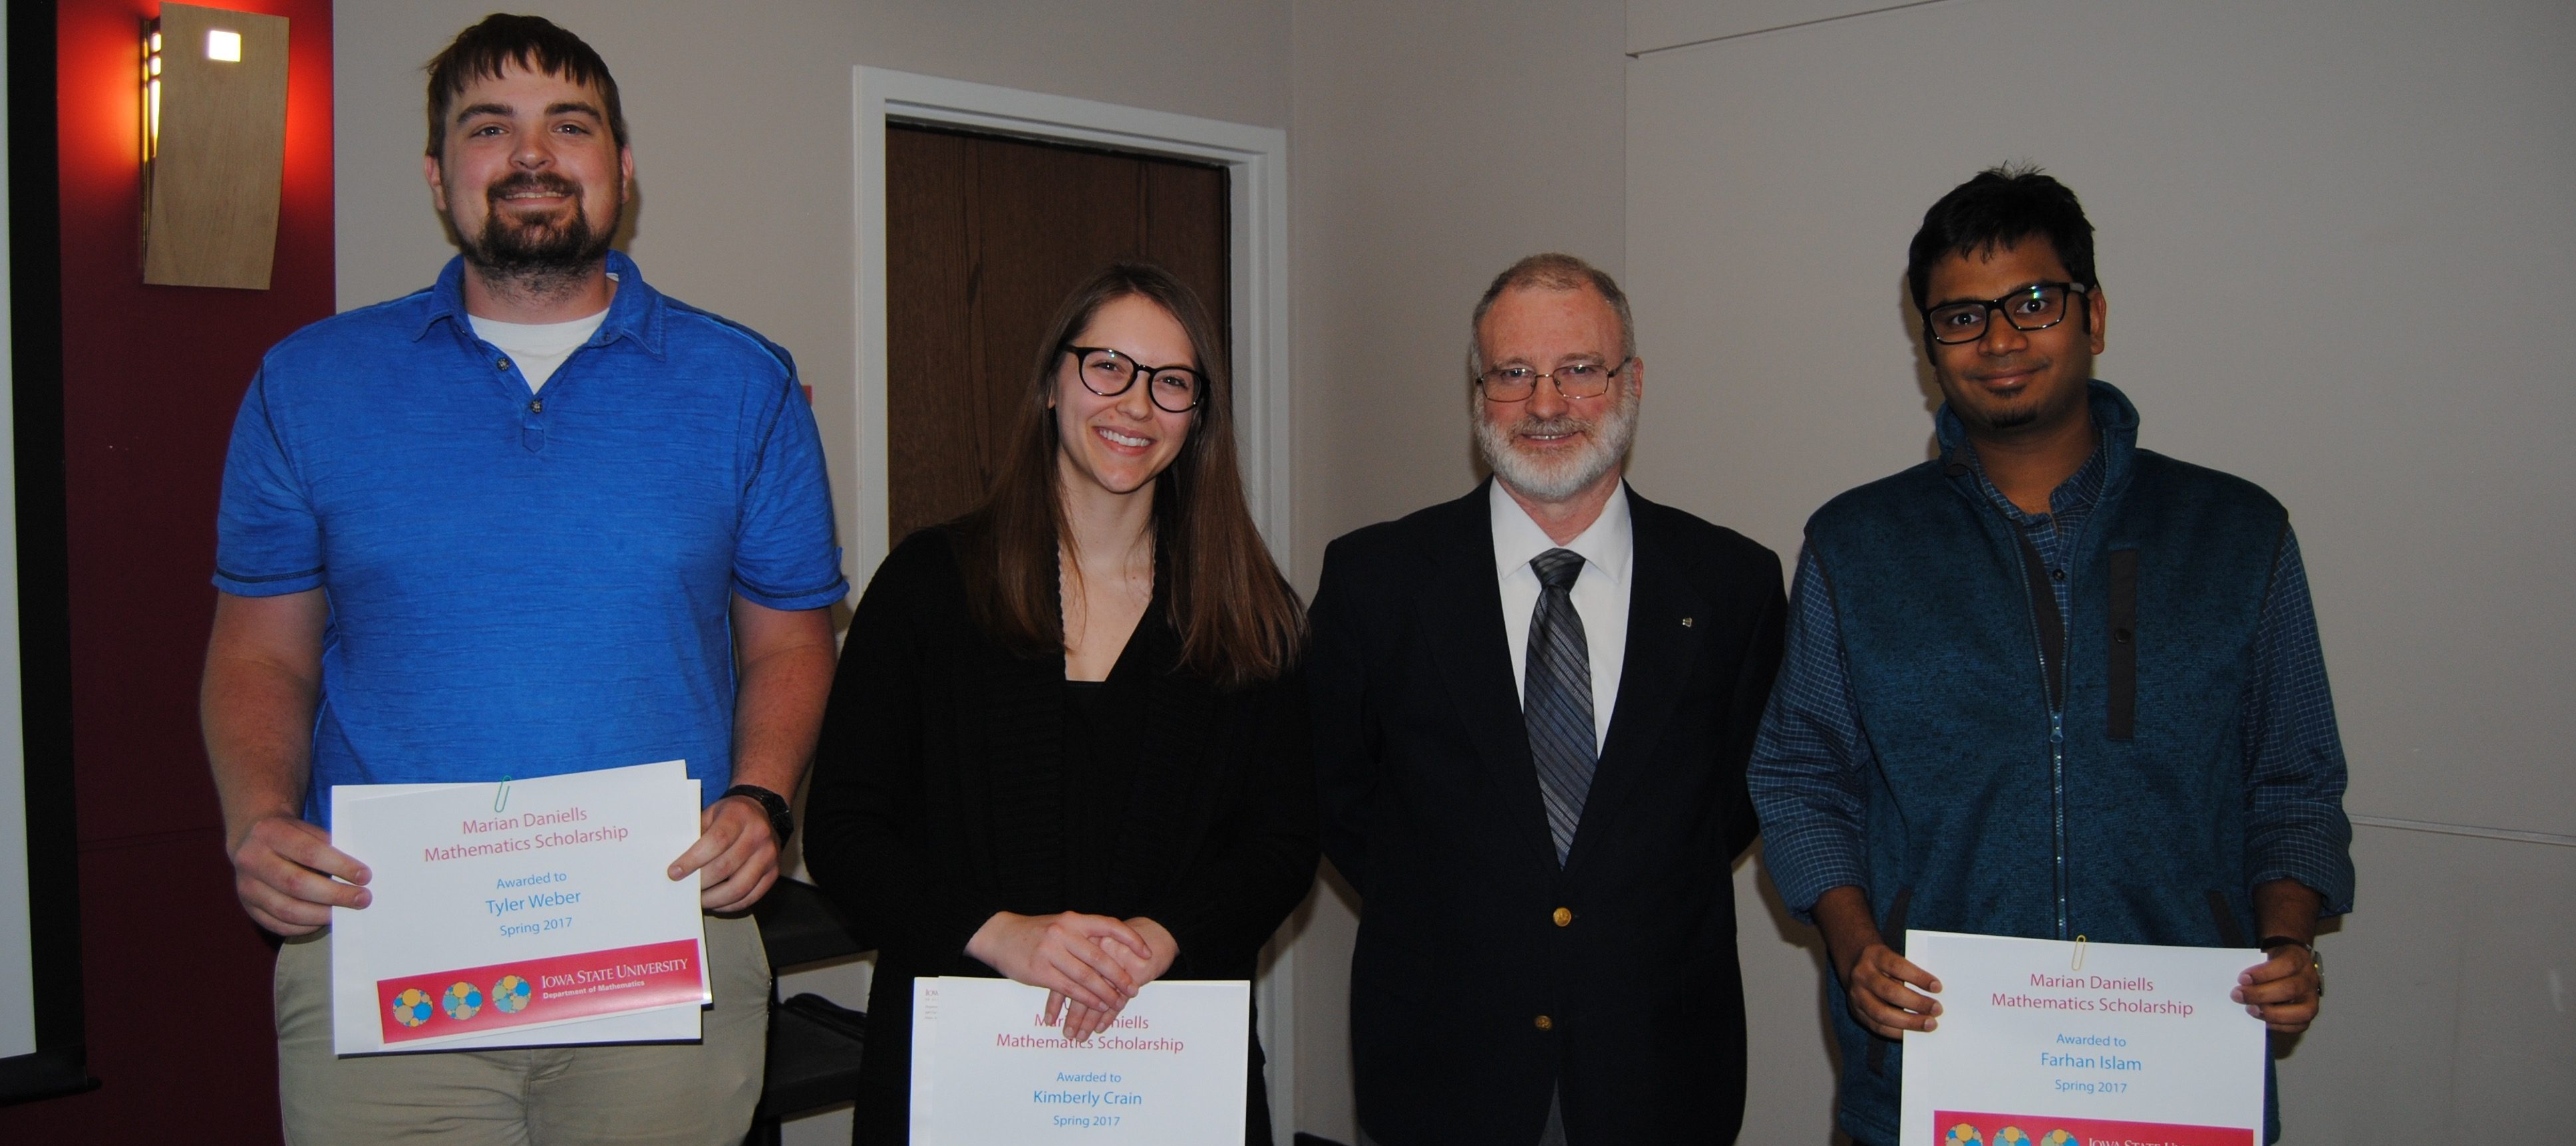 James Wilson, director of undergraduate education, presents students Tyler Weber, Kimberly Crain, and Farhan Islam with the Marian Daniells Scholarship.